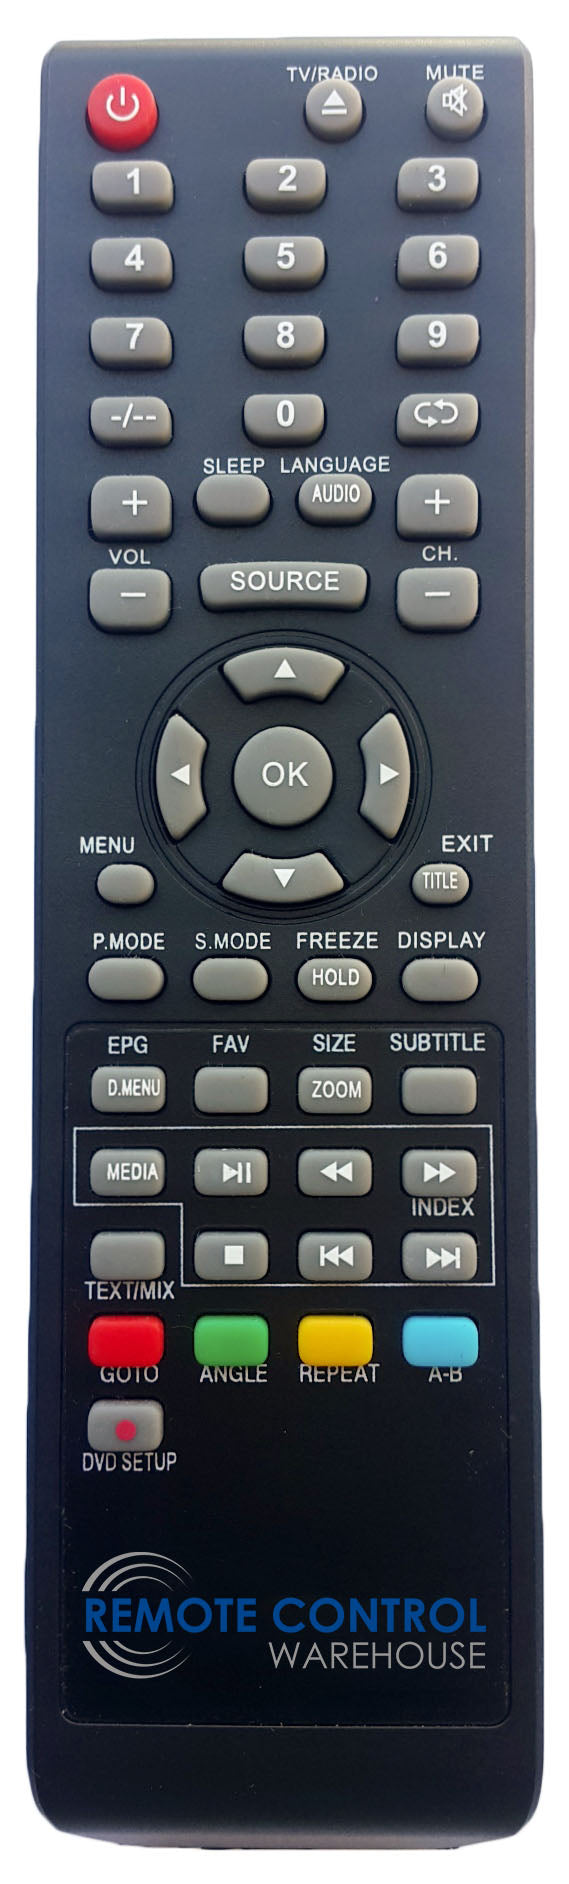 REPLACEMENT BAUHN REMOTE CONTROL SUBSTITUTE  ATV50-715  ATV50715  LCD TV - Remote Control Warehouse